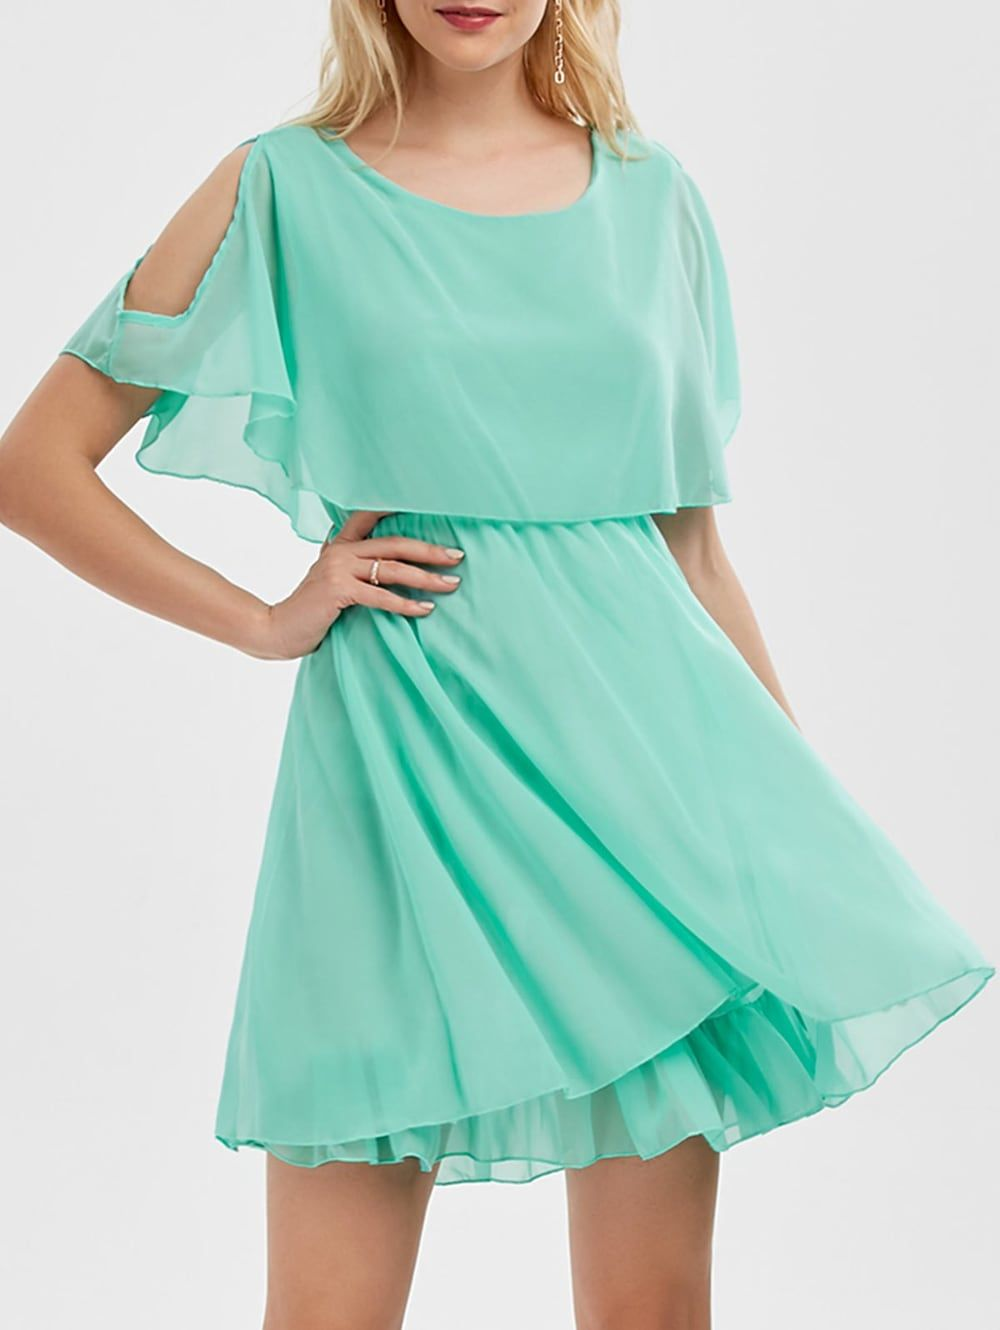 Light green lace dress  Ruffle Chiffon Cold Shoulder Mini Dress  Womenus fashion